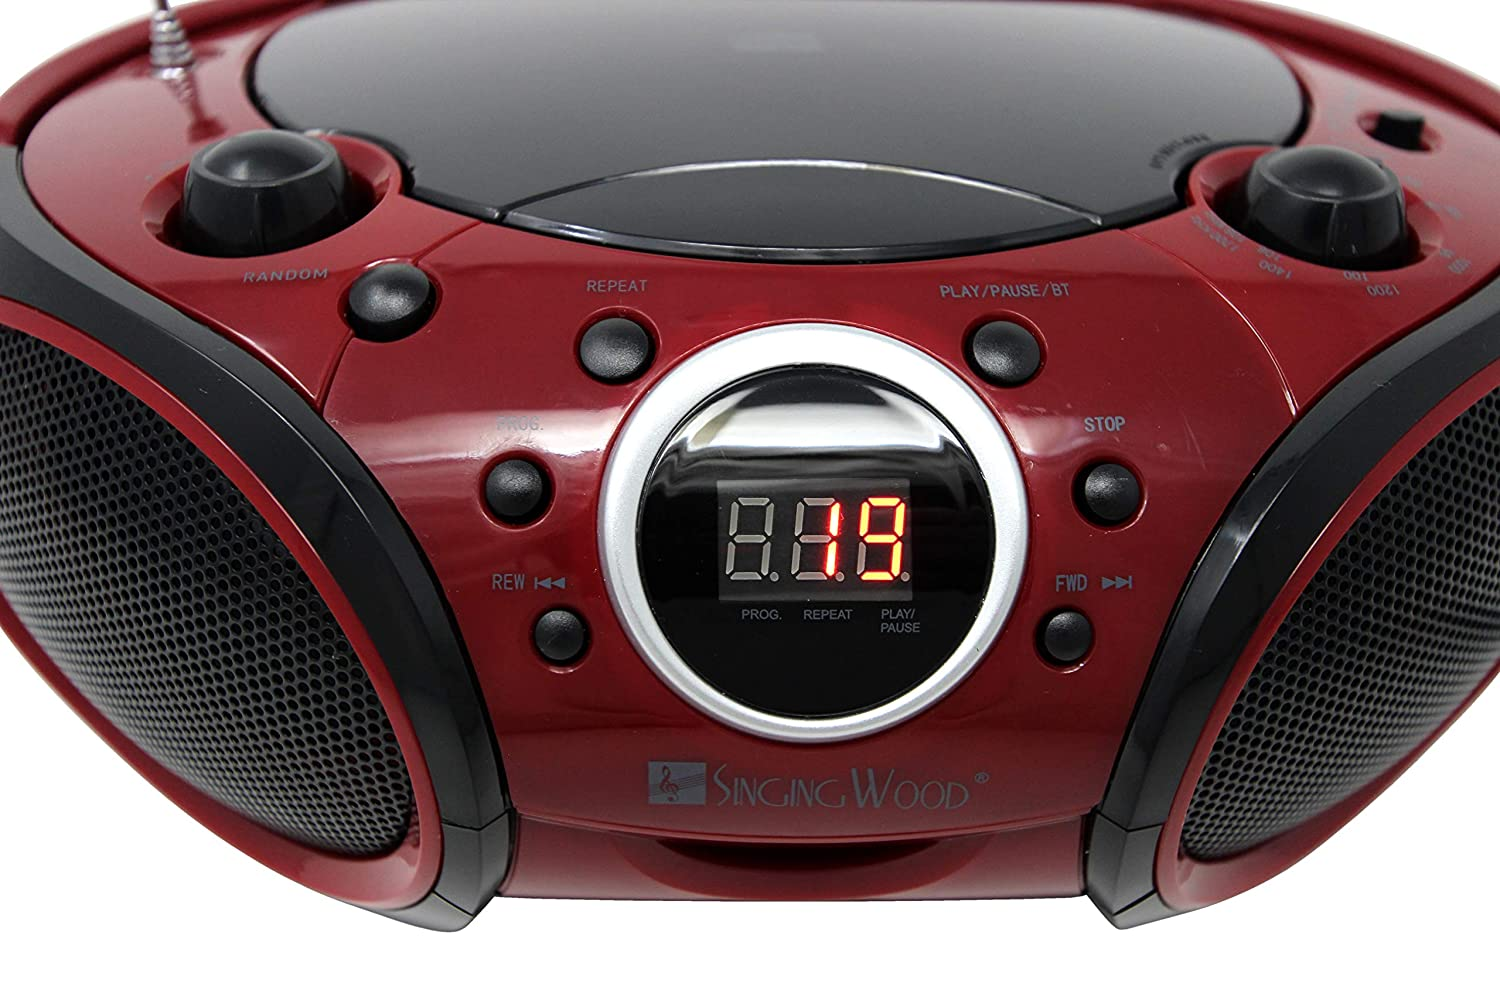 CD-R//RW Player Portable//w Bluetooth AM//FM Radio Aux Input Headset Jack Firemist Red Foldable Carrying Handle SINGING WOOD CD